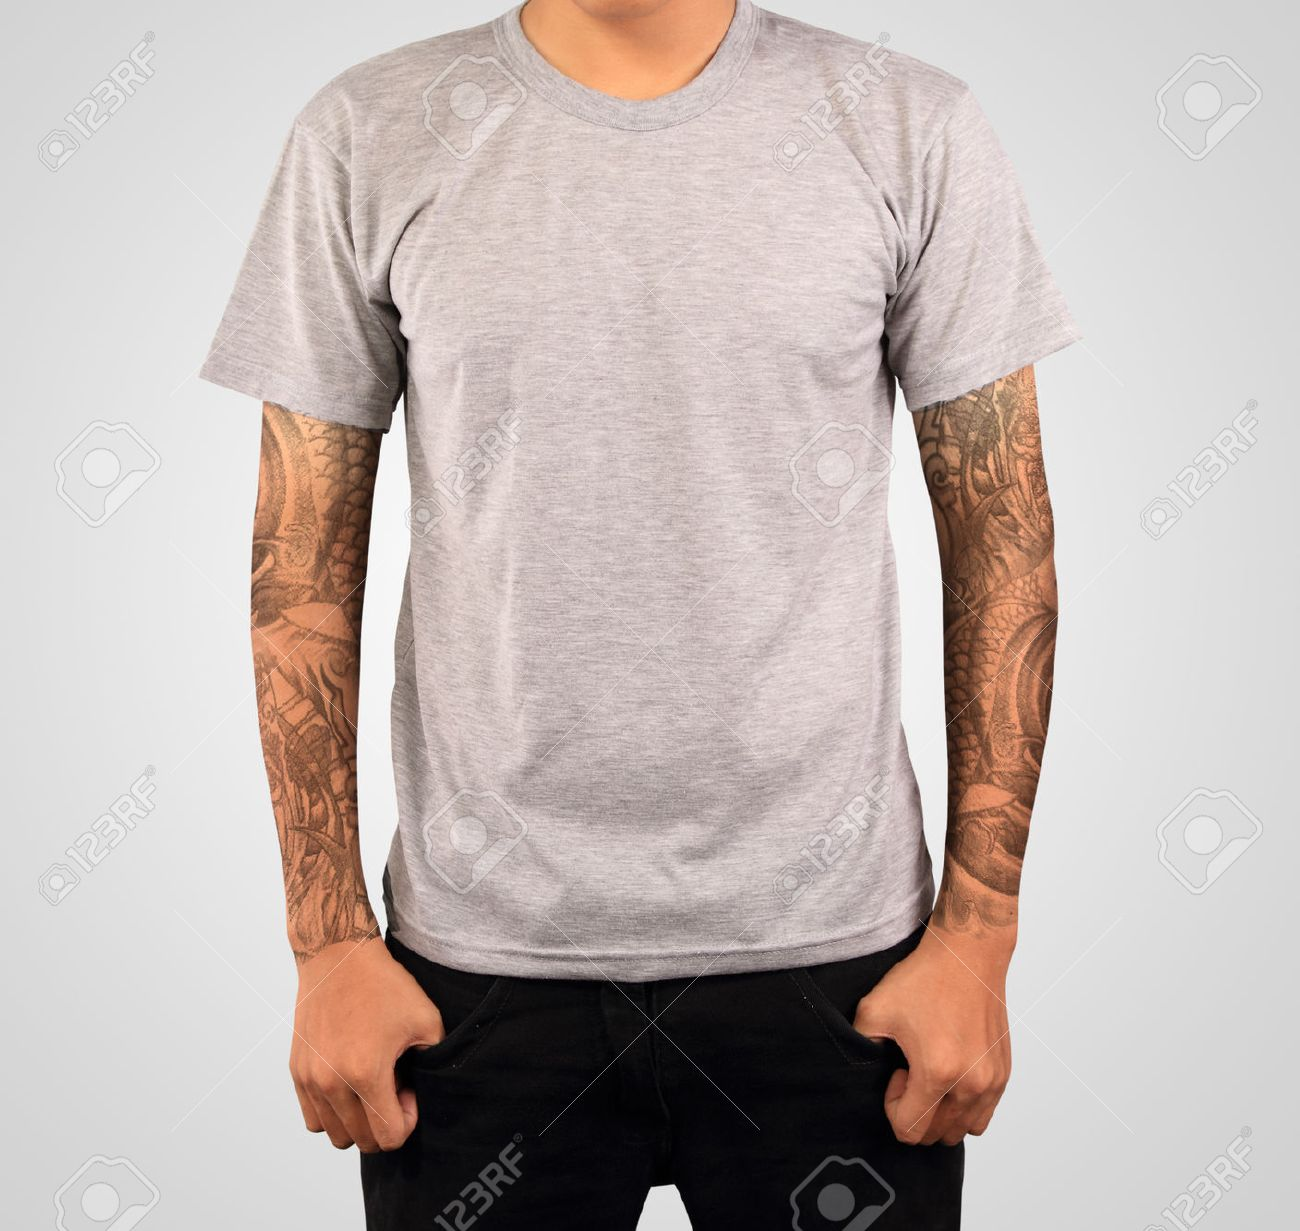 Grey T Shirt Template Stock Photo Picture And Royalty Free Image